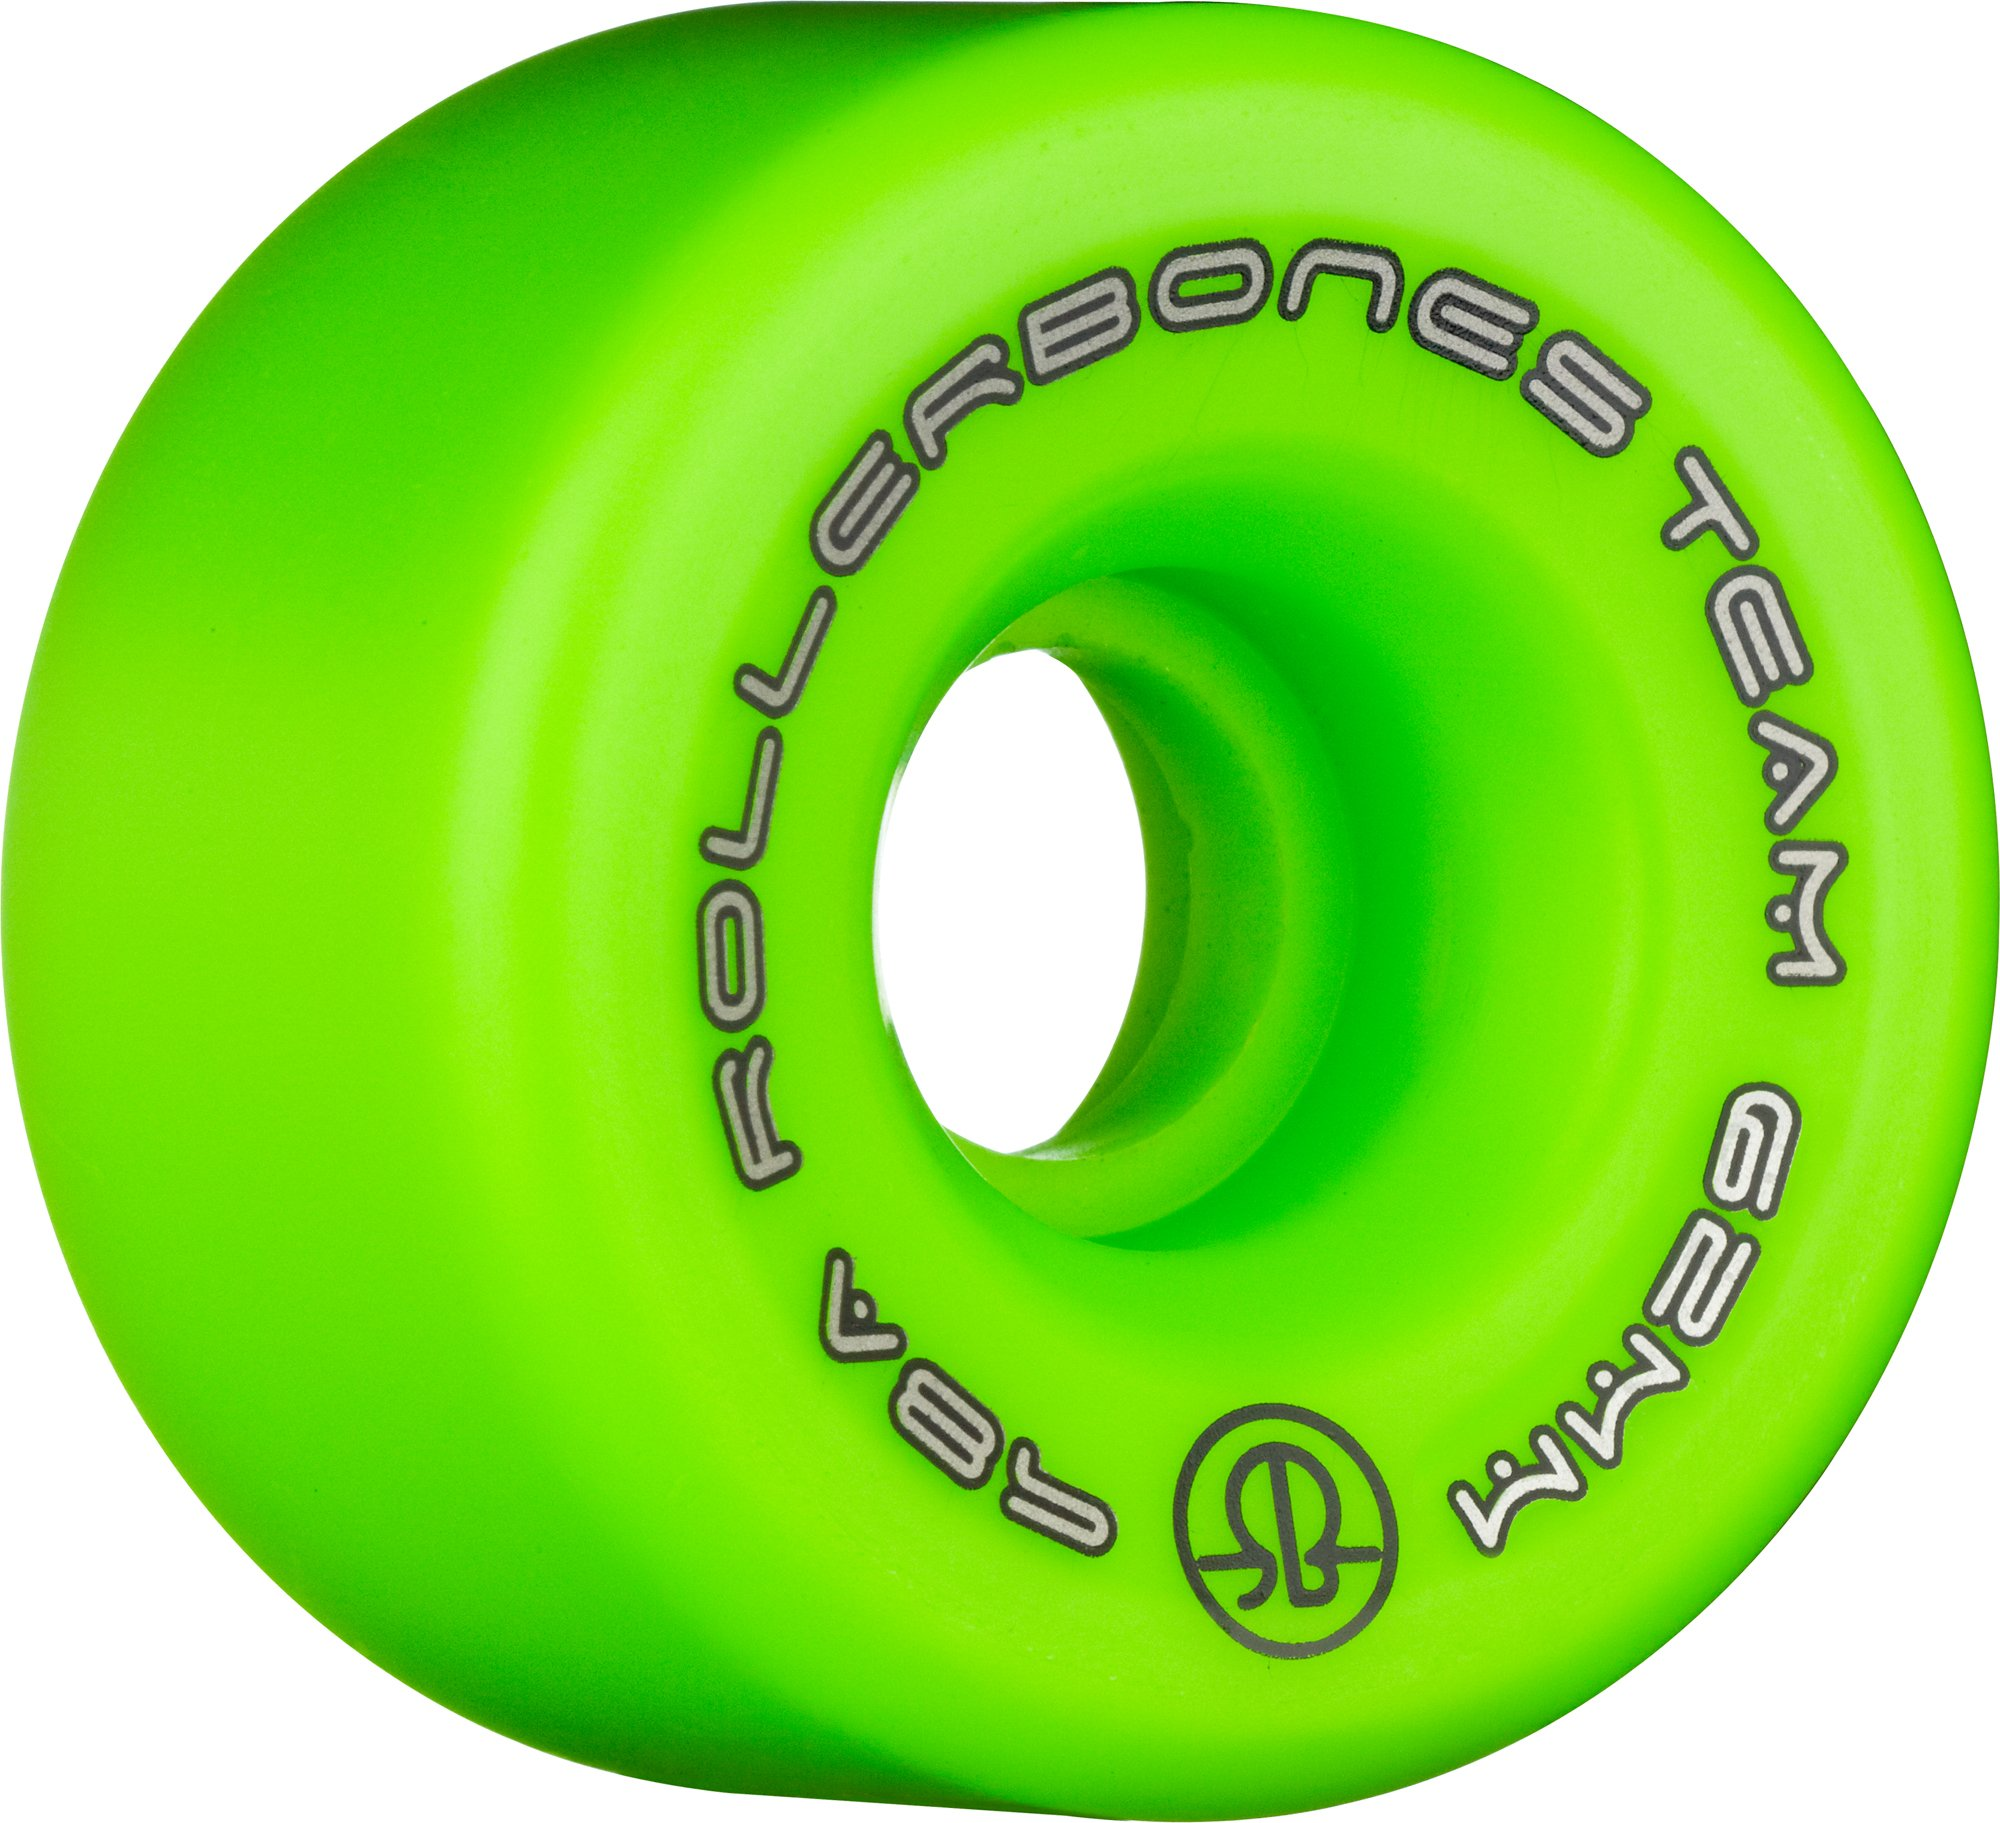 RollerBones Team Logo Recreational Roller Skate Wheels (Set of 8), Green, 62mm by RollerBones